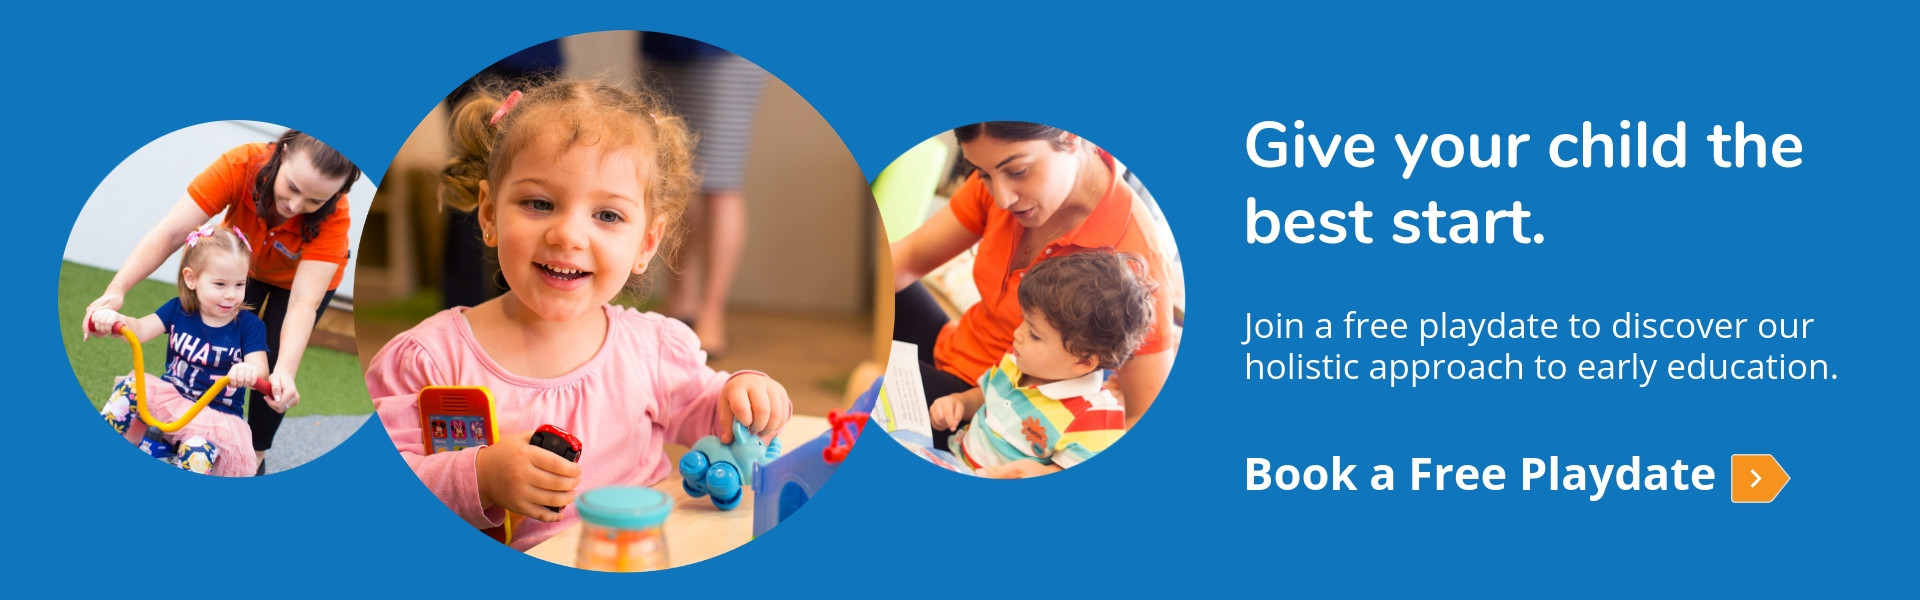 Give your child the best start - discover our holistic approach to early education - book a free playdate